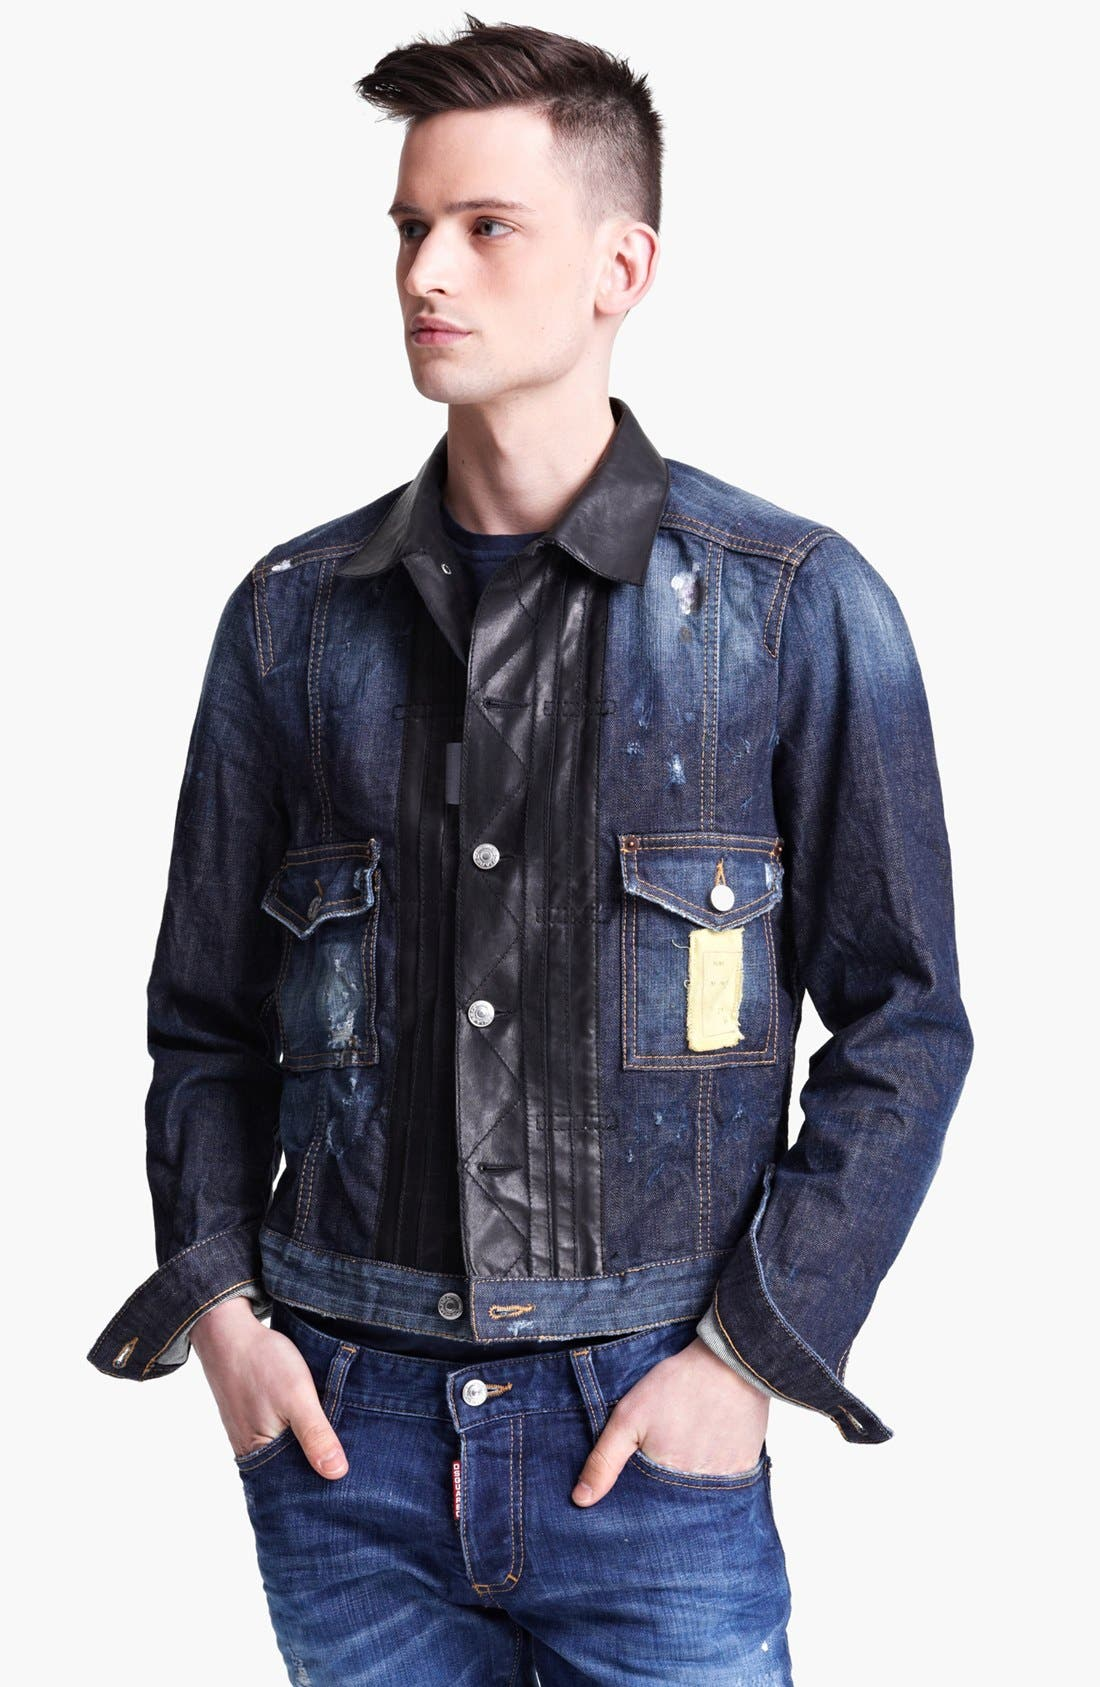 Alternate Image 1 Selected - Dsquared2 Denim Jacket with Leather Trim